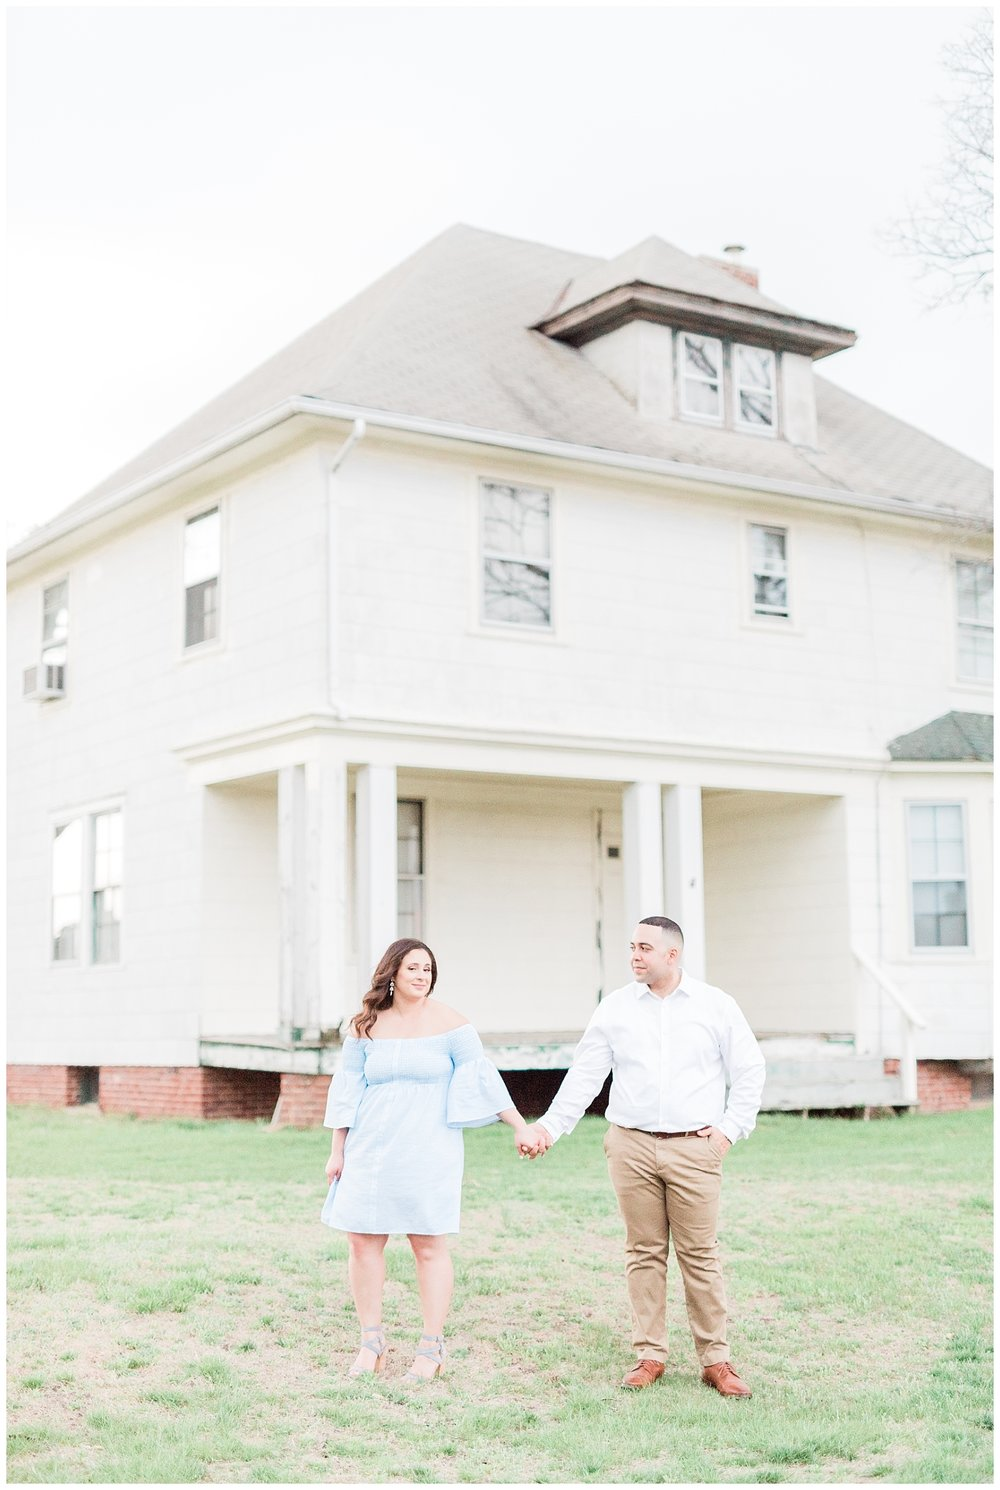 Sandy-Hook-NJ-Engagement-Session-Wedding-Photographer-Photo-_0047.jpg